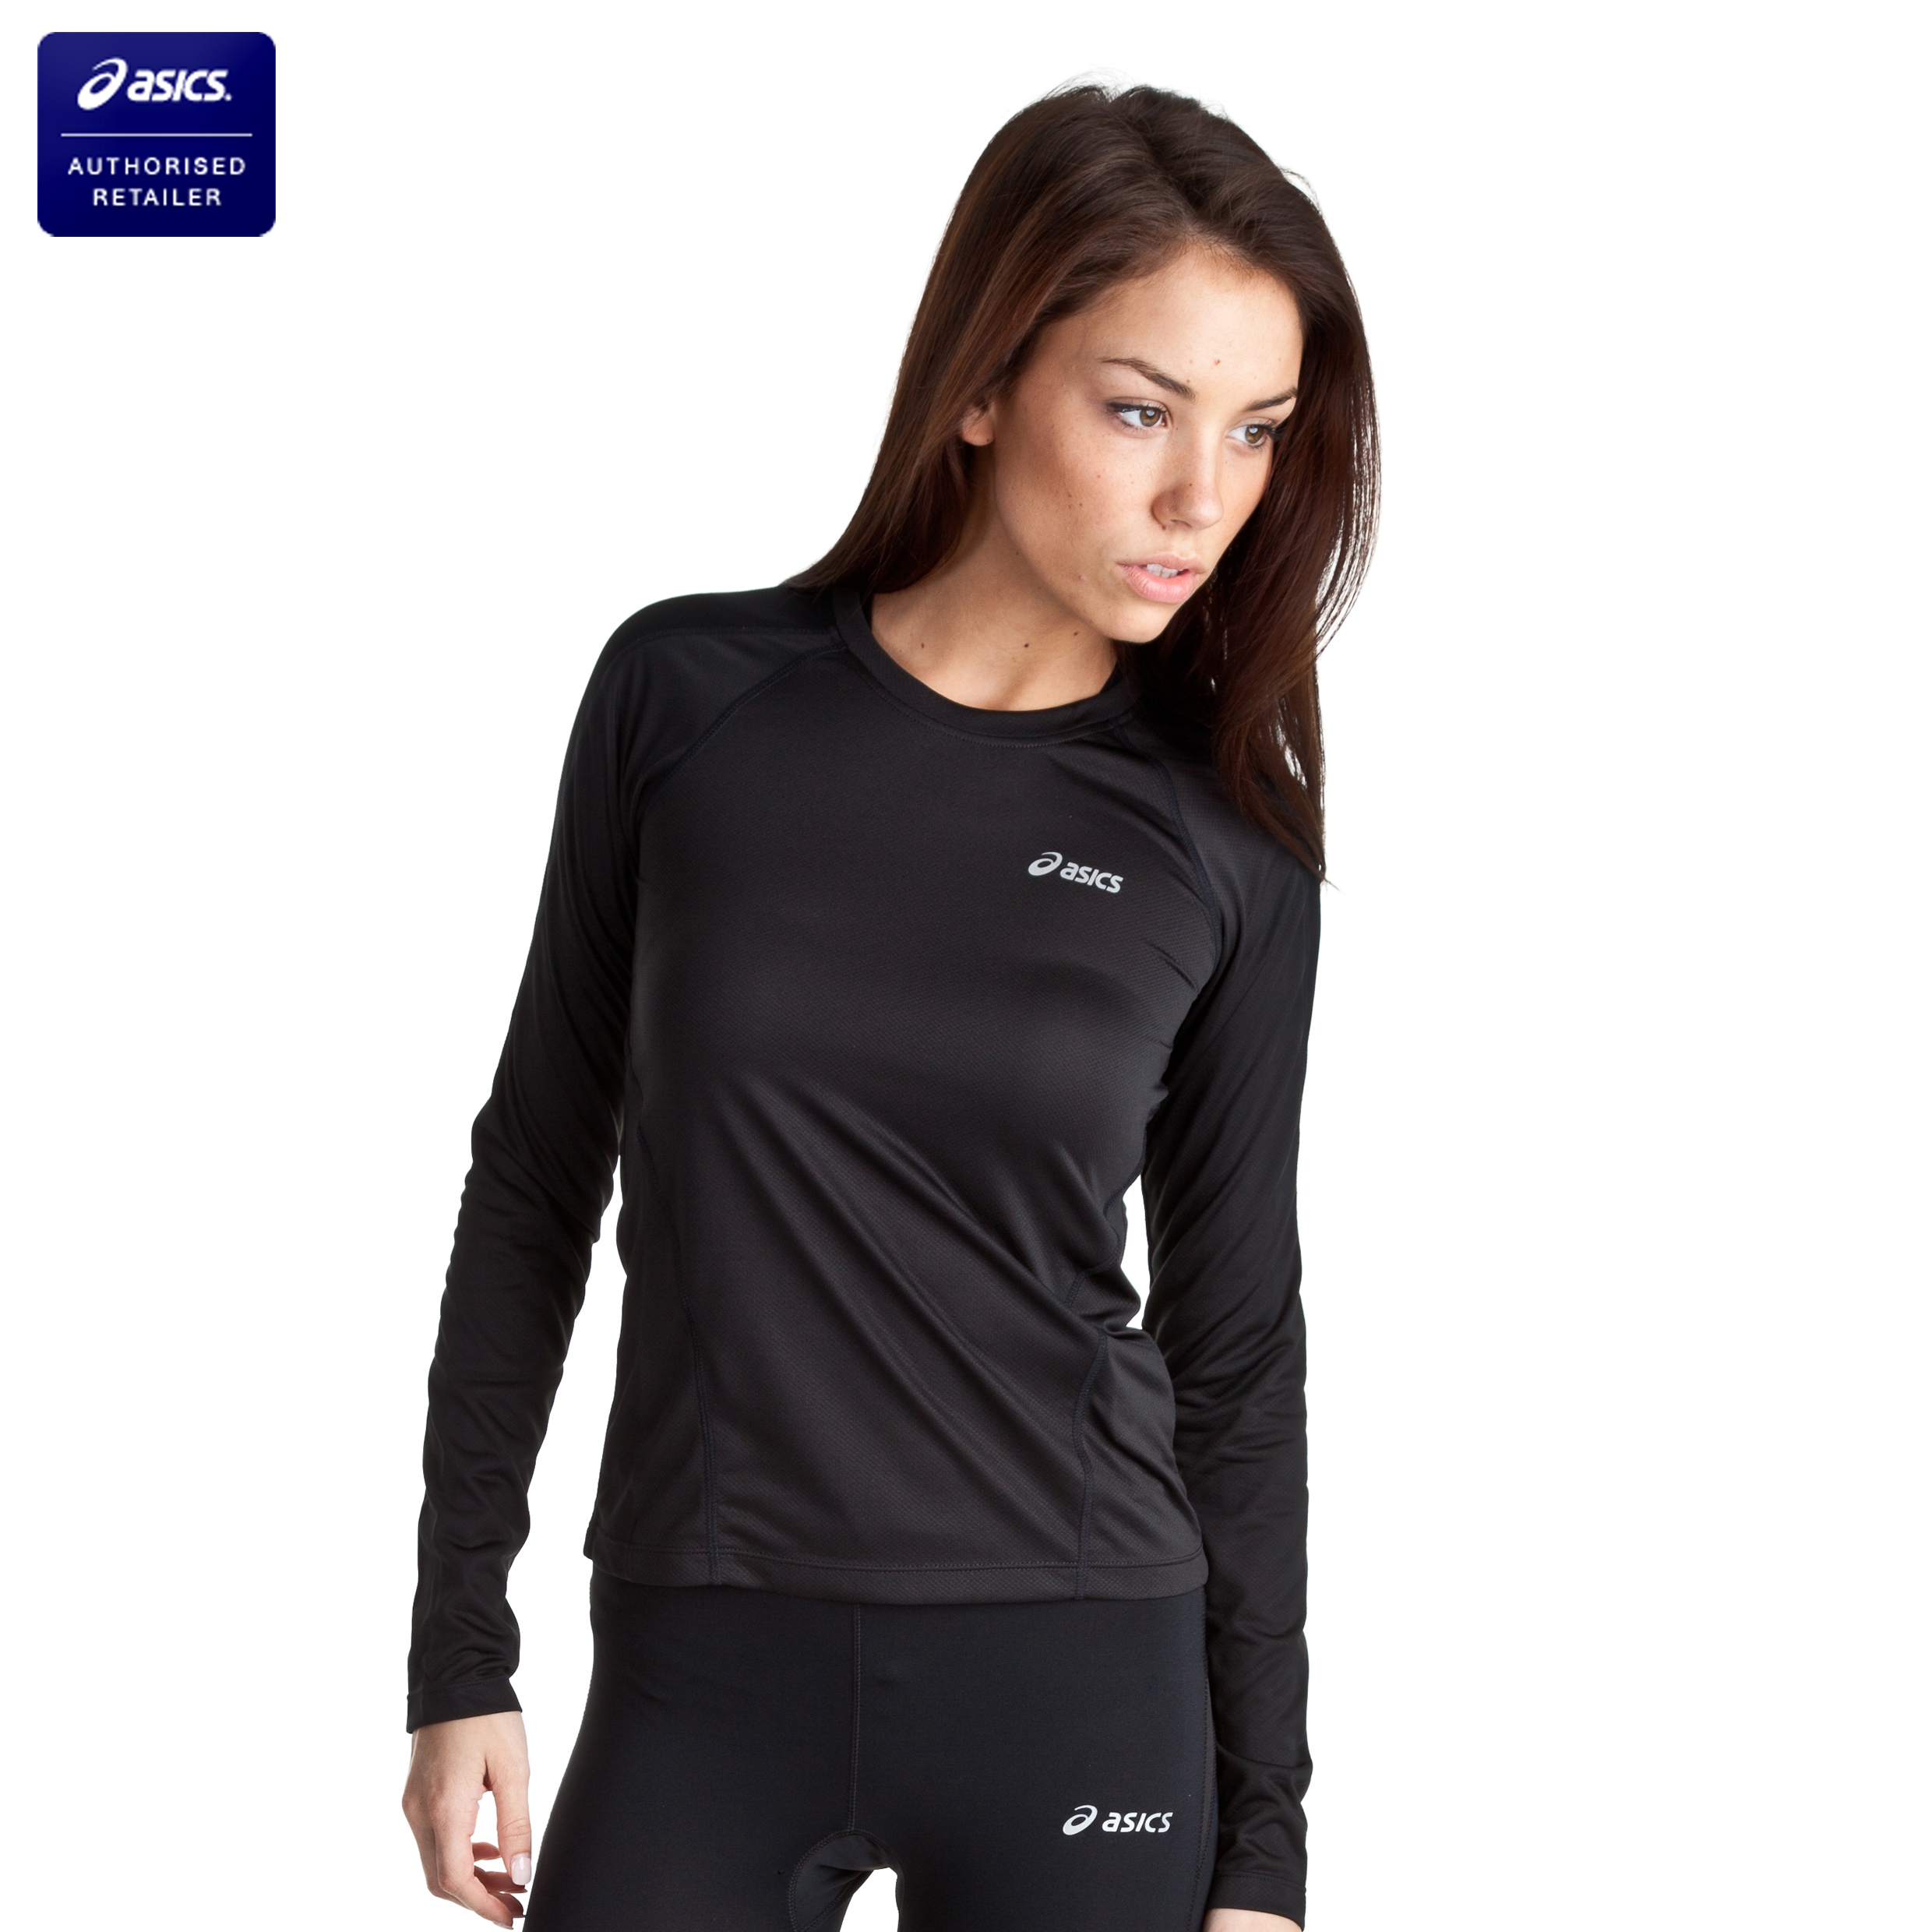 Asics Vesta Long Sleeved Crew - Black - Womens